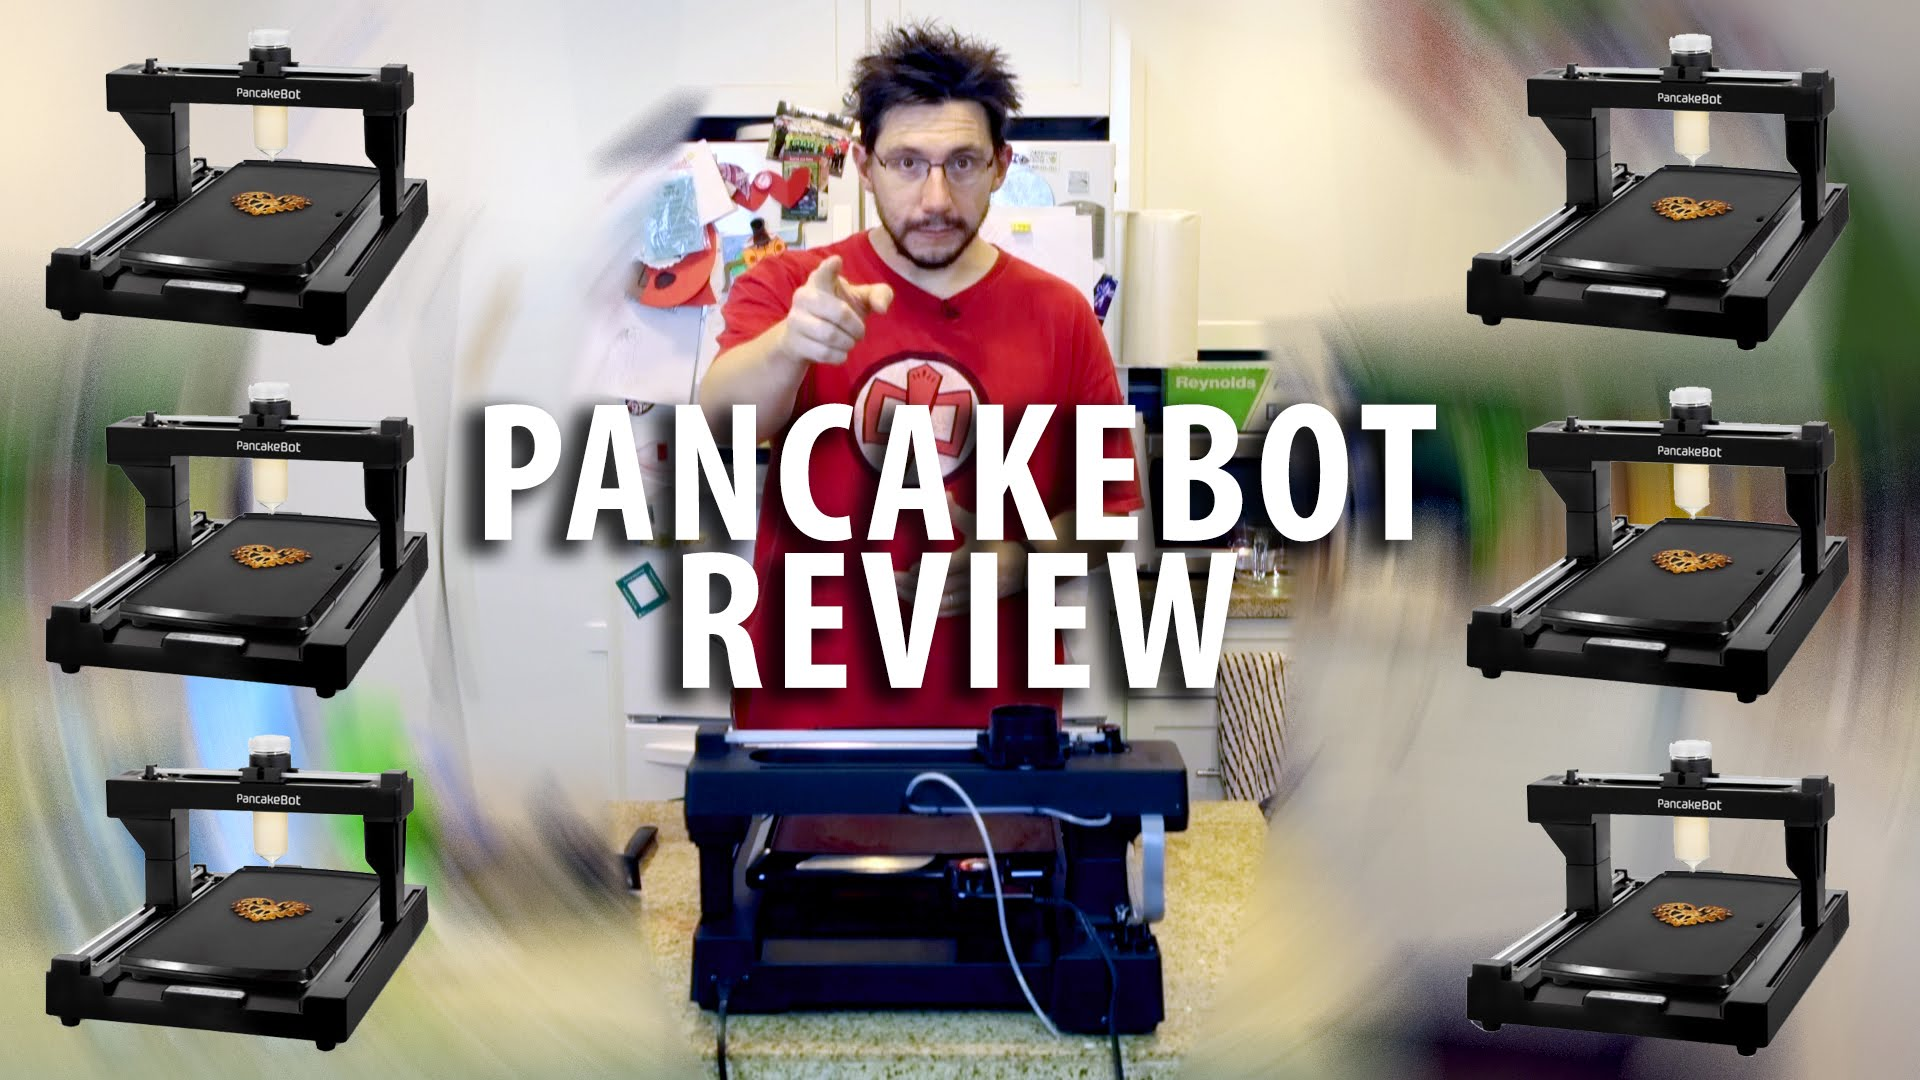 My Review of the Pancakebot 3D Printer – The world's first pancake printer!